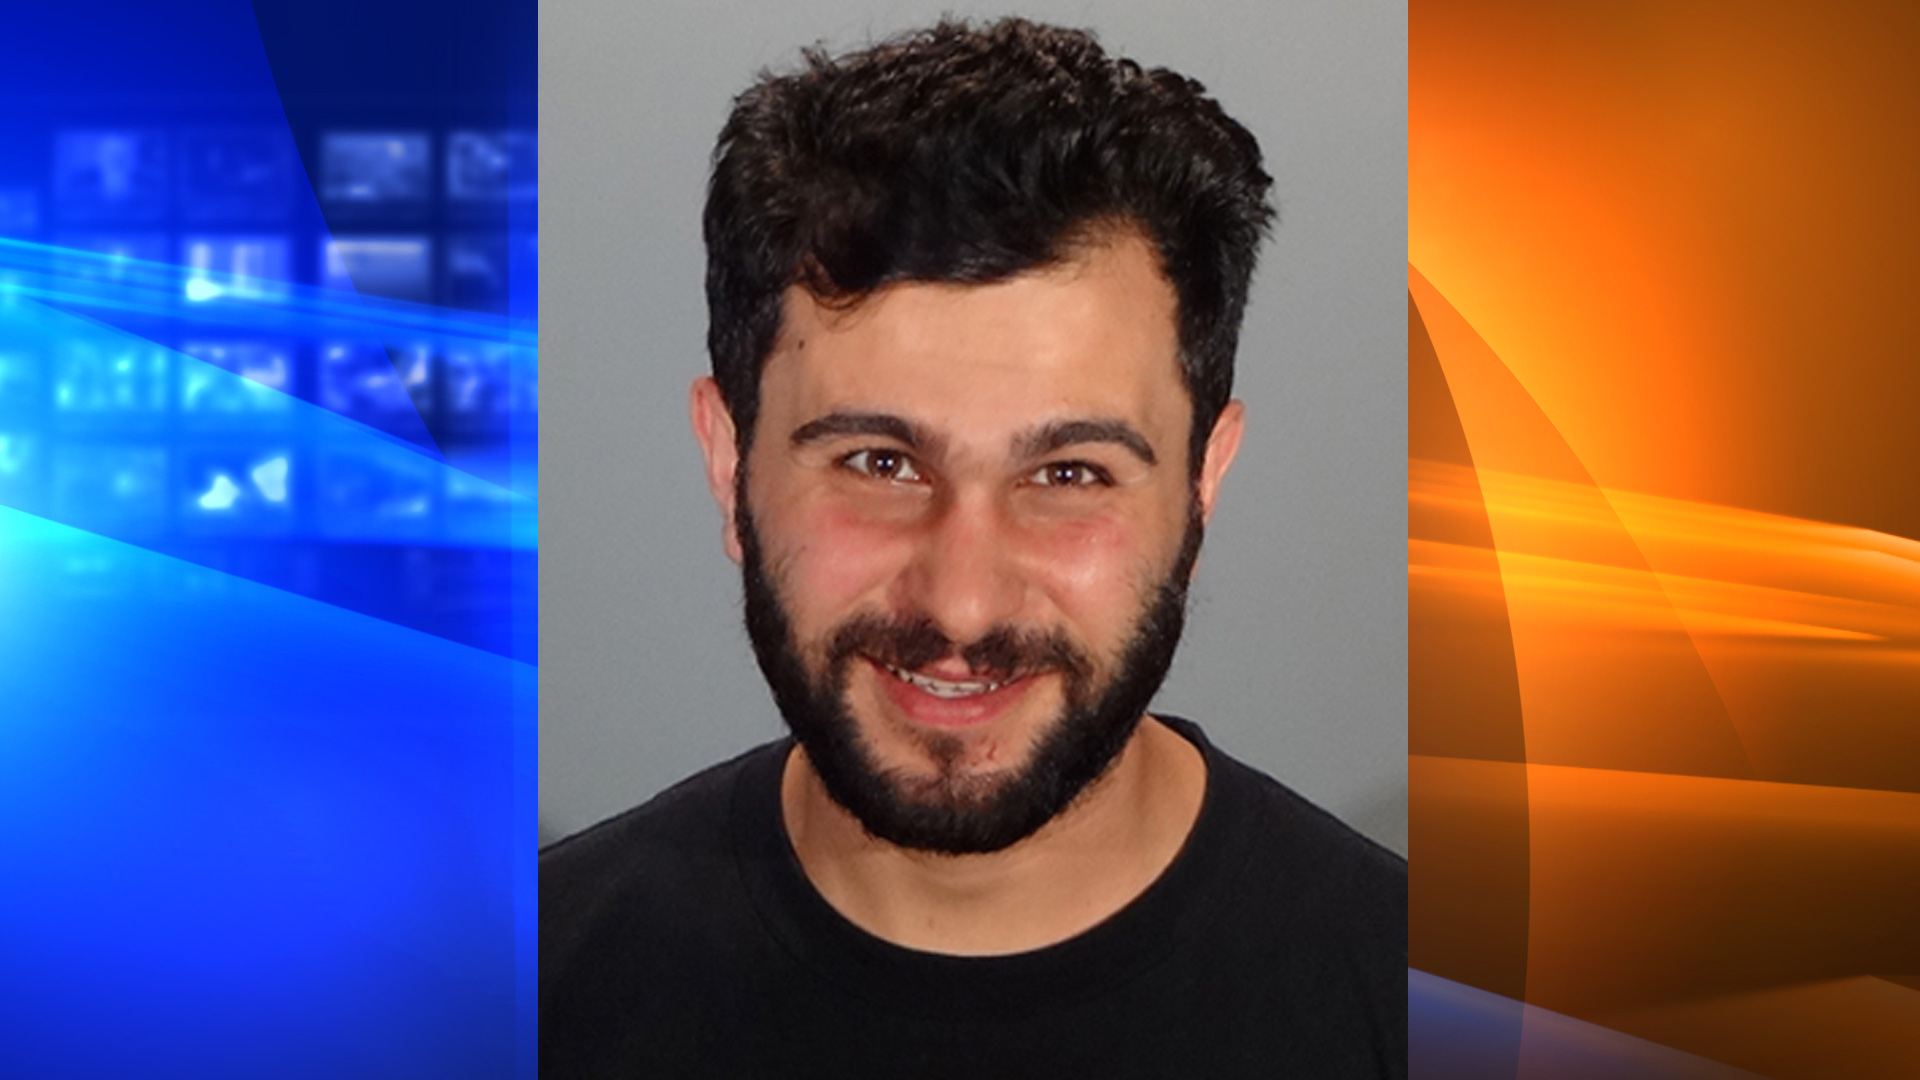 Ruben Garsevanyan is seen in a booking photo released by the Glendale Police Department on June 16, 2021.